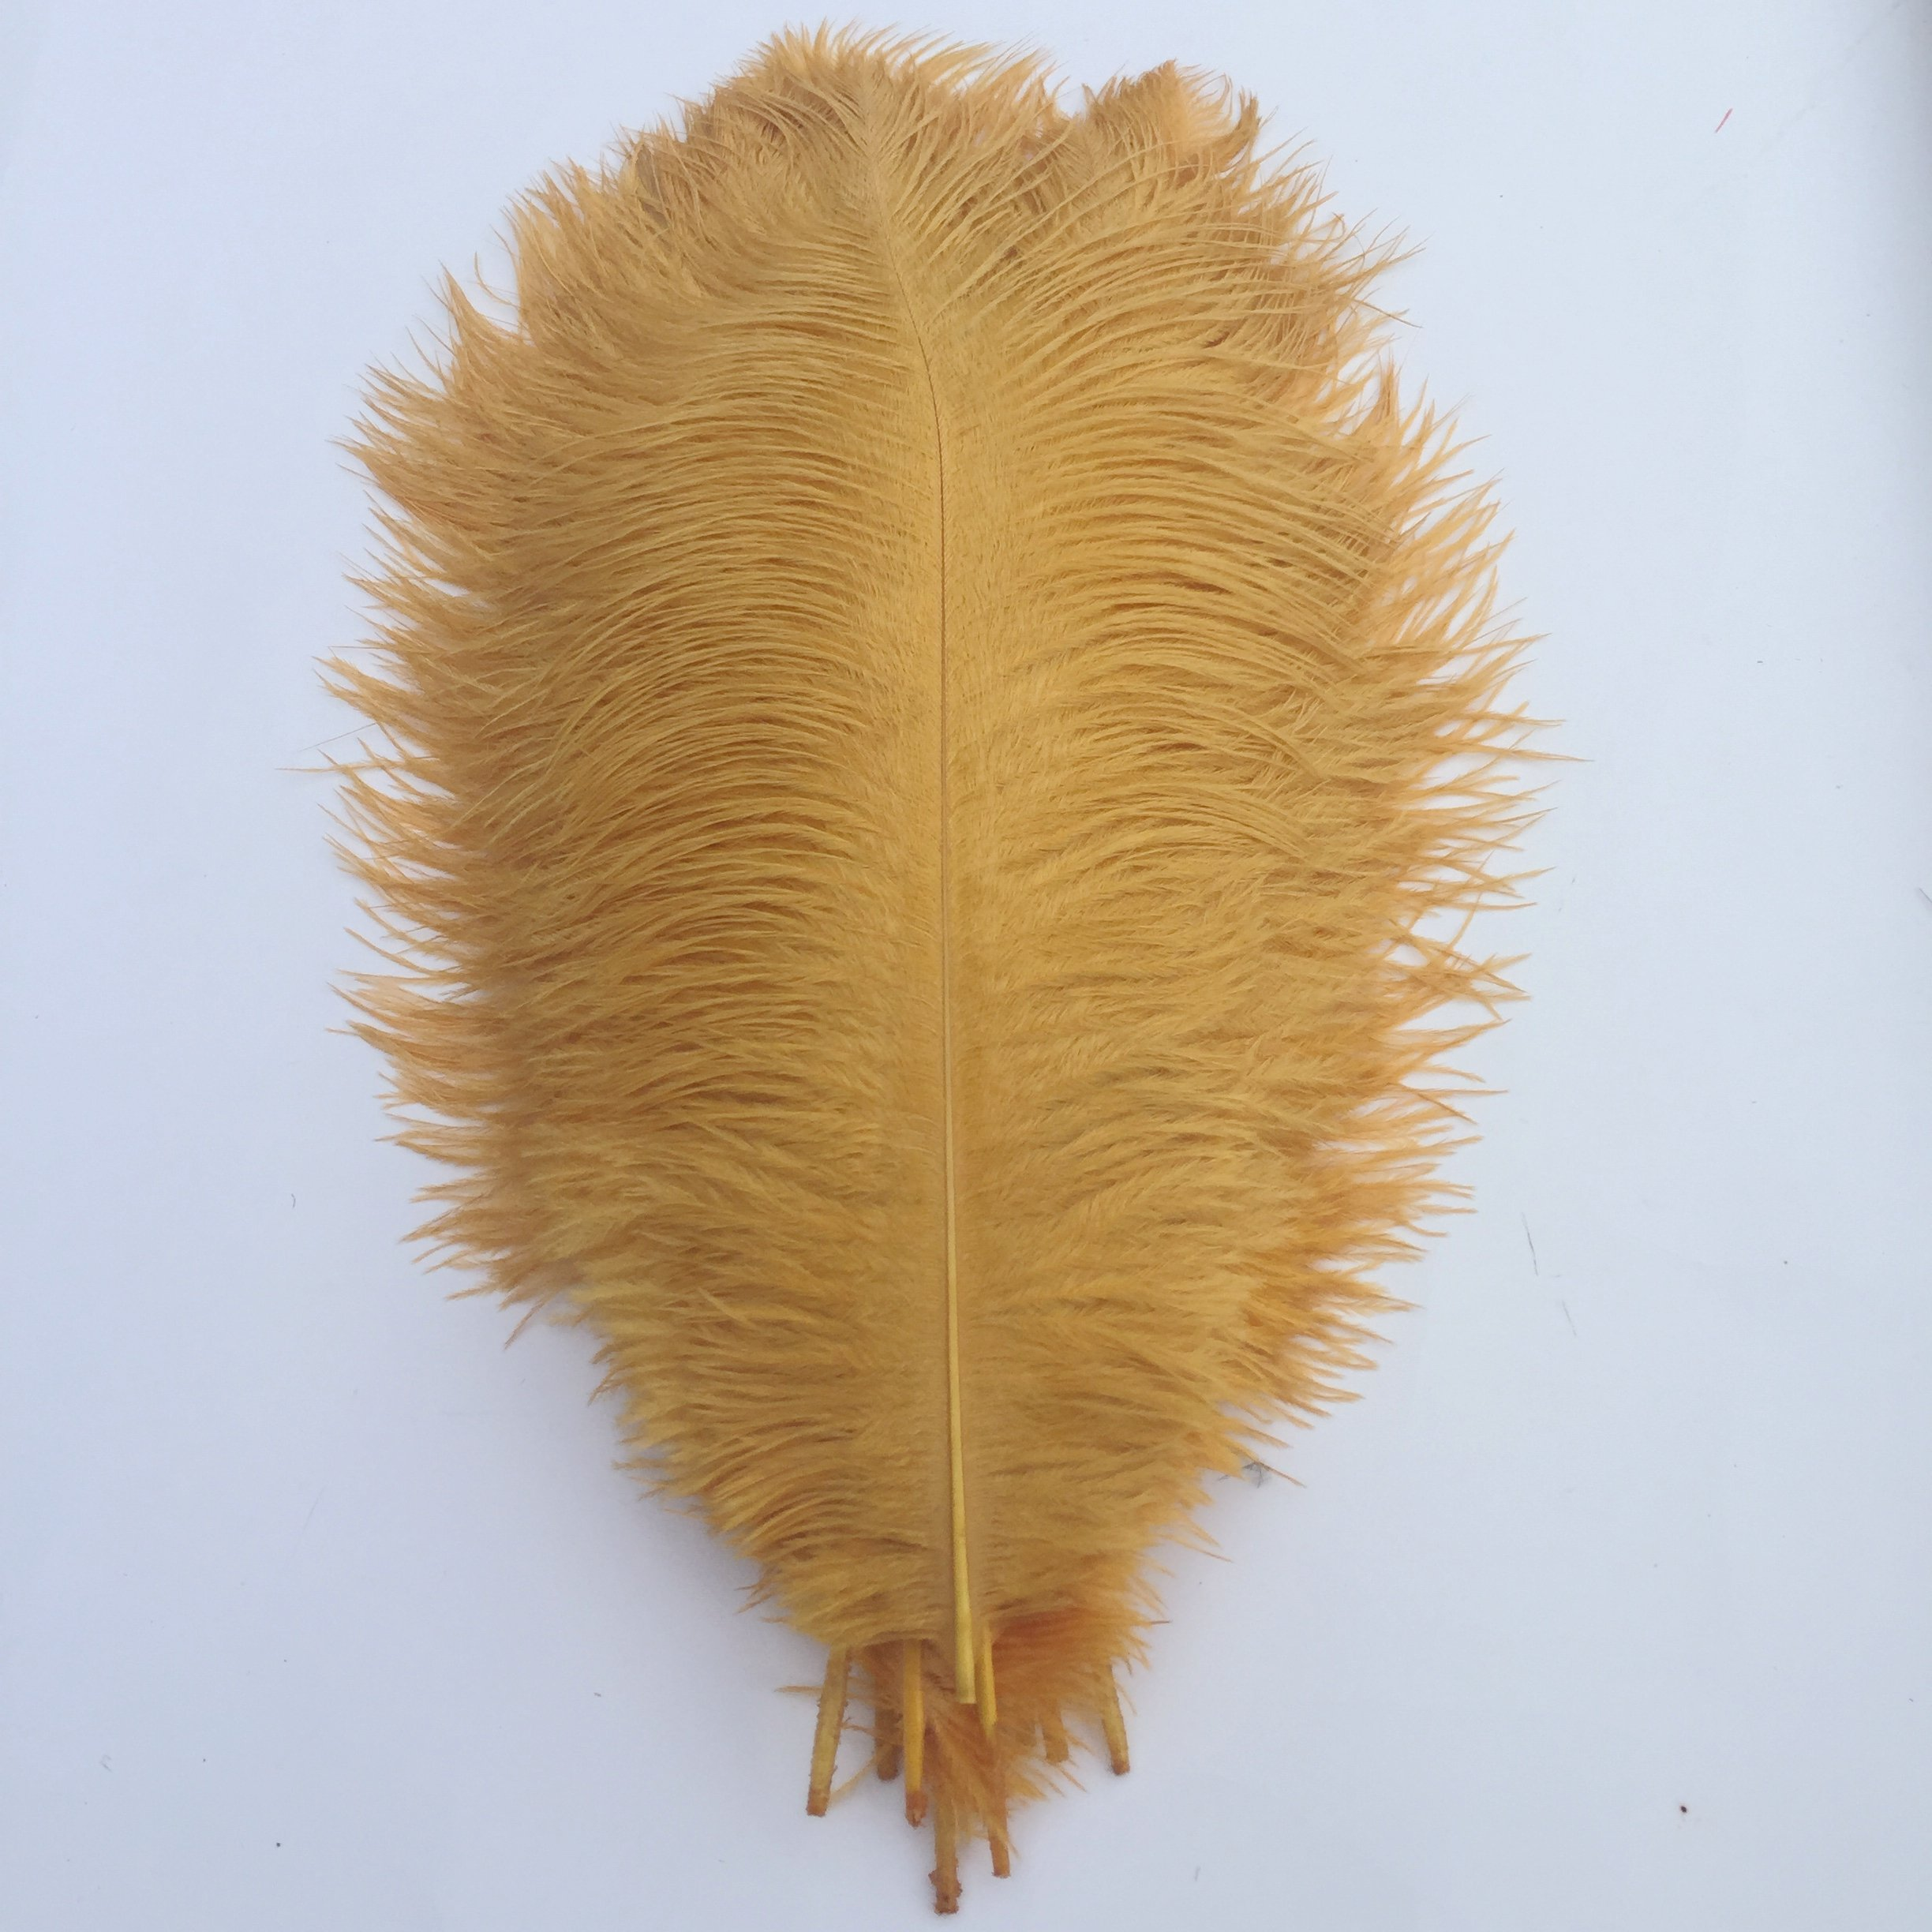 Shekyeon Gold 13-16inch 33-40cm Ostrich Feathers Plumes for Table Decoration Pack of 10